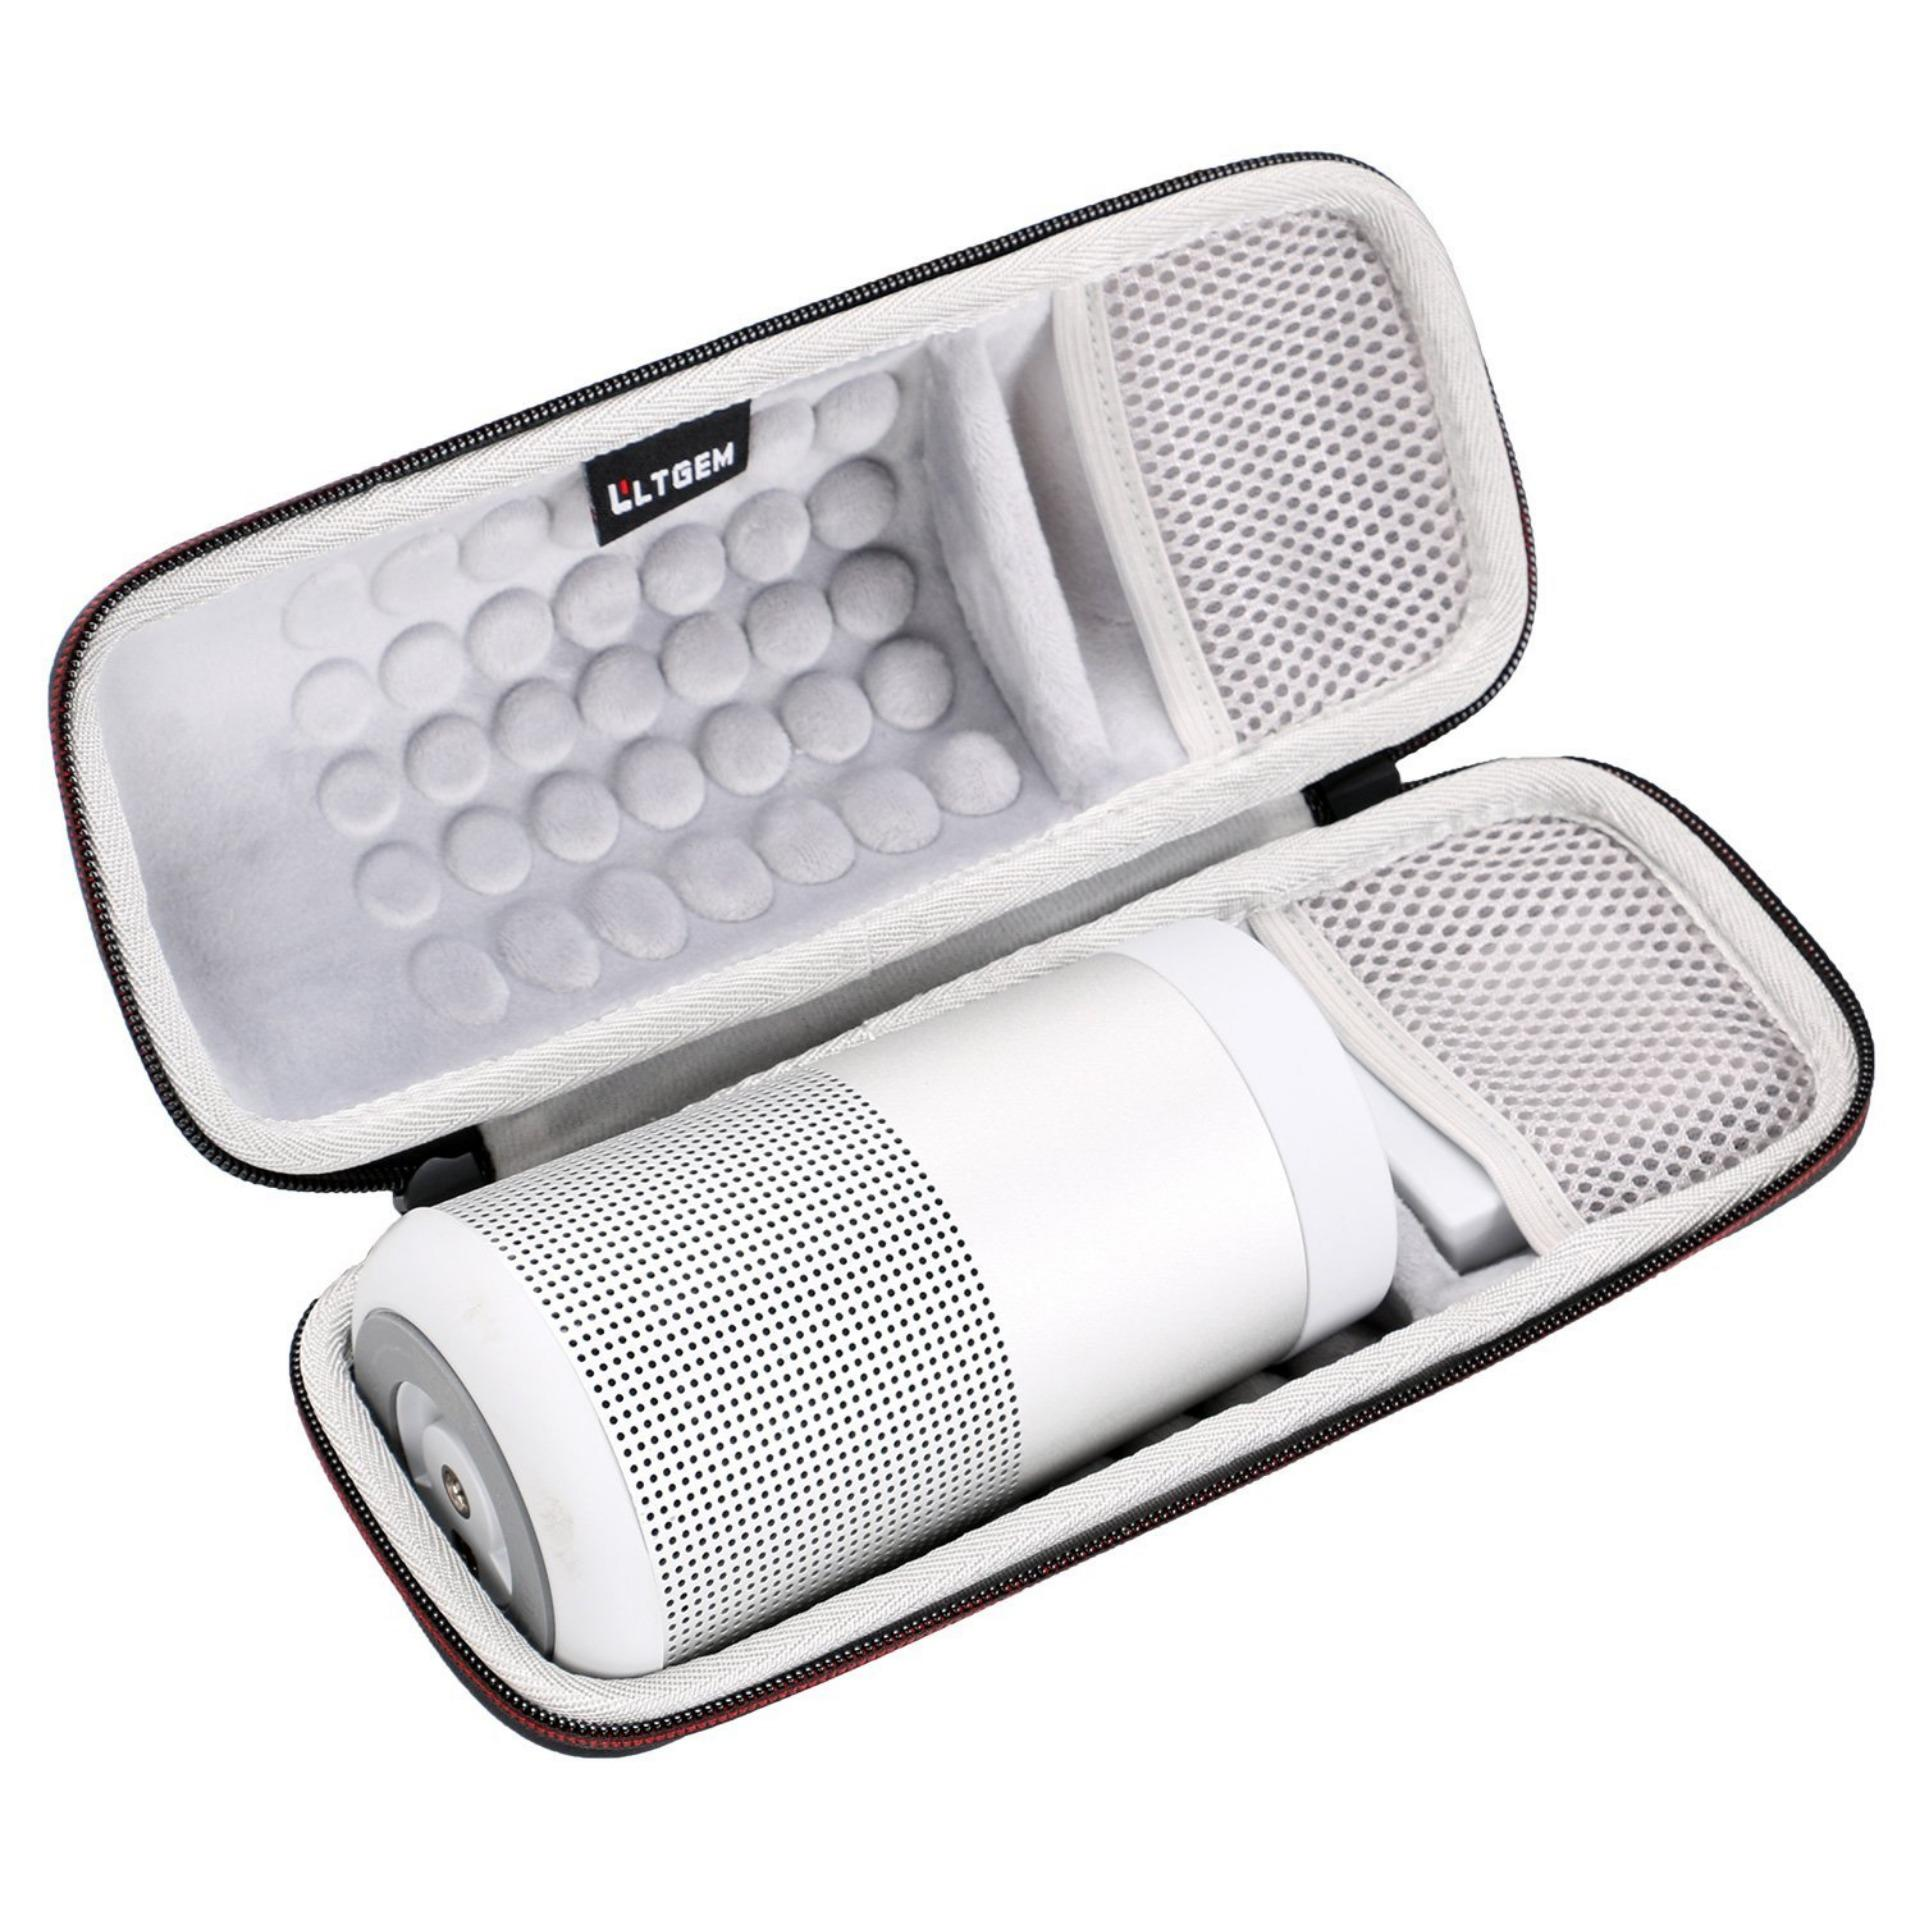 Compare Prices For Ltgem Portable Hard Eva Case Protective Storage Carrying Bag Case For Revolve Bluetooth Speaker With Mesh Pocket Intl